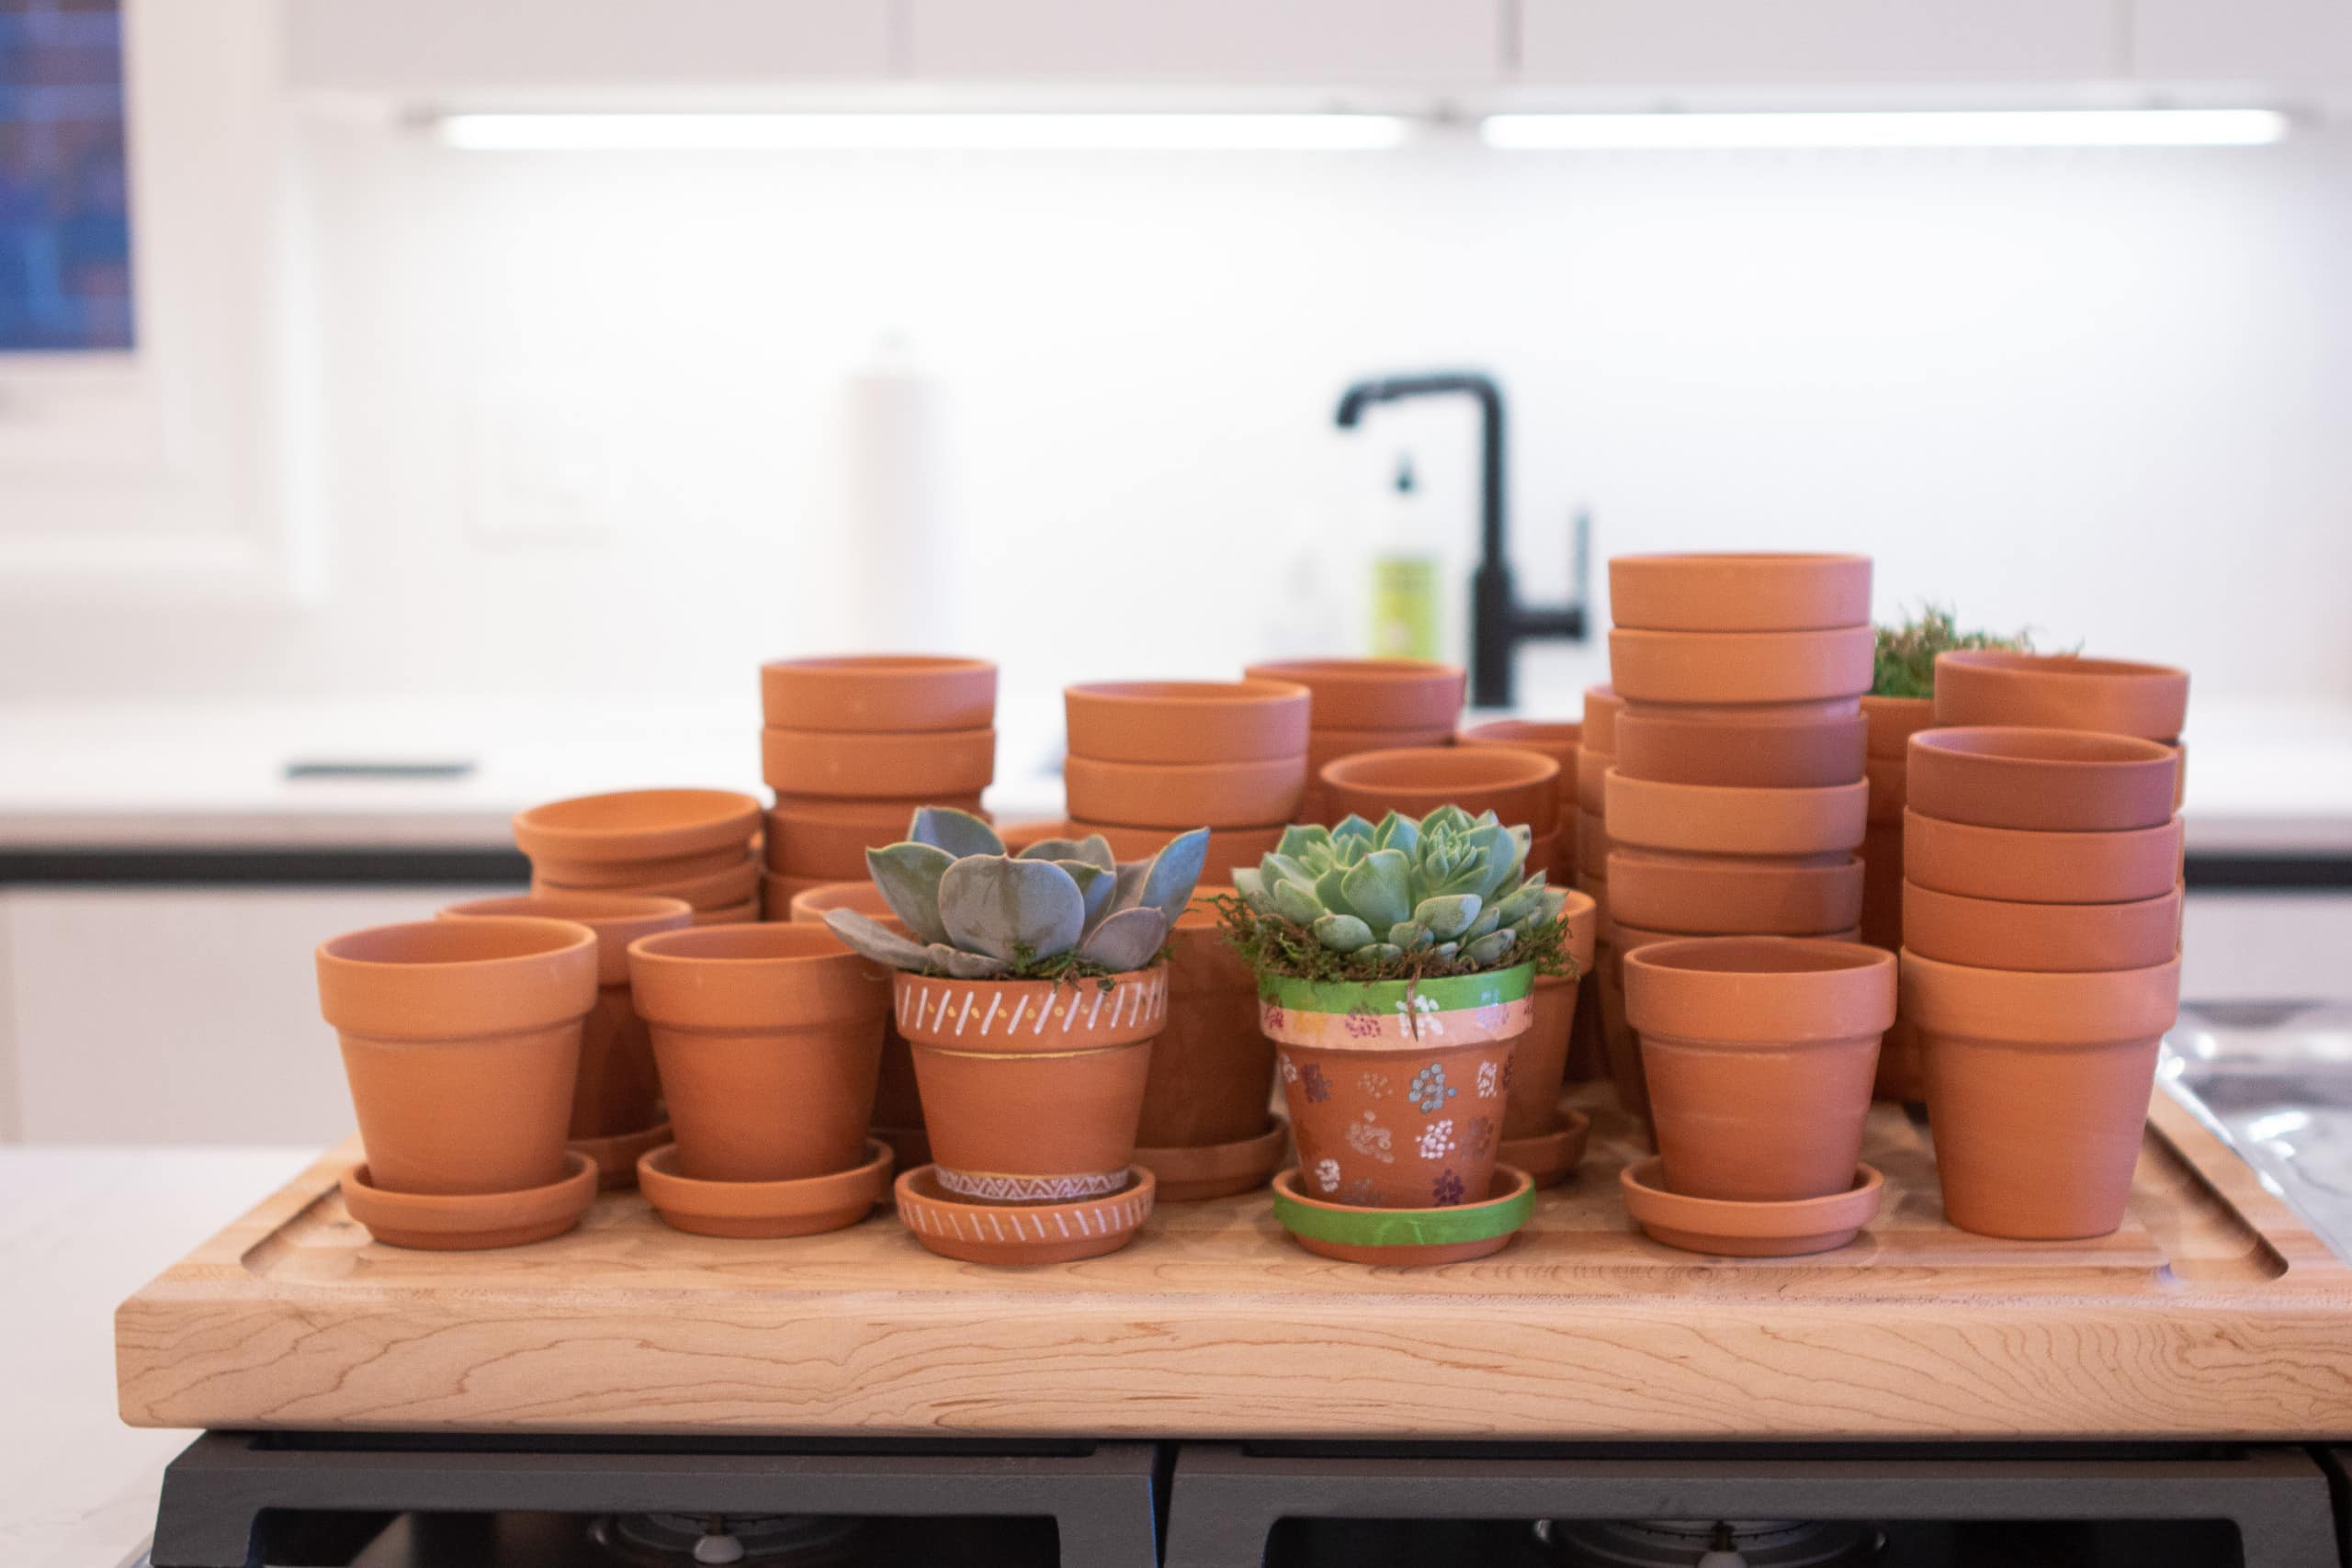 Terra cotta pots for succulents